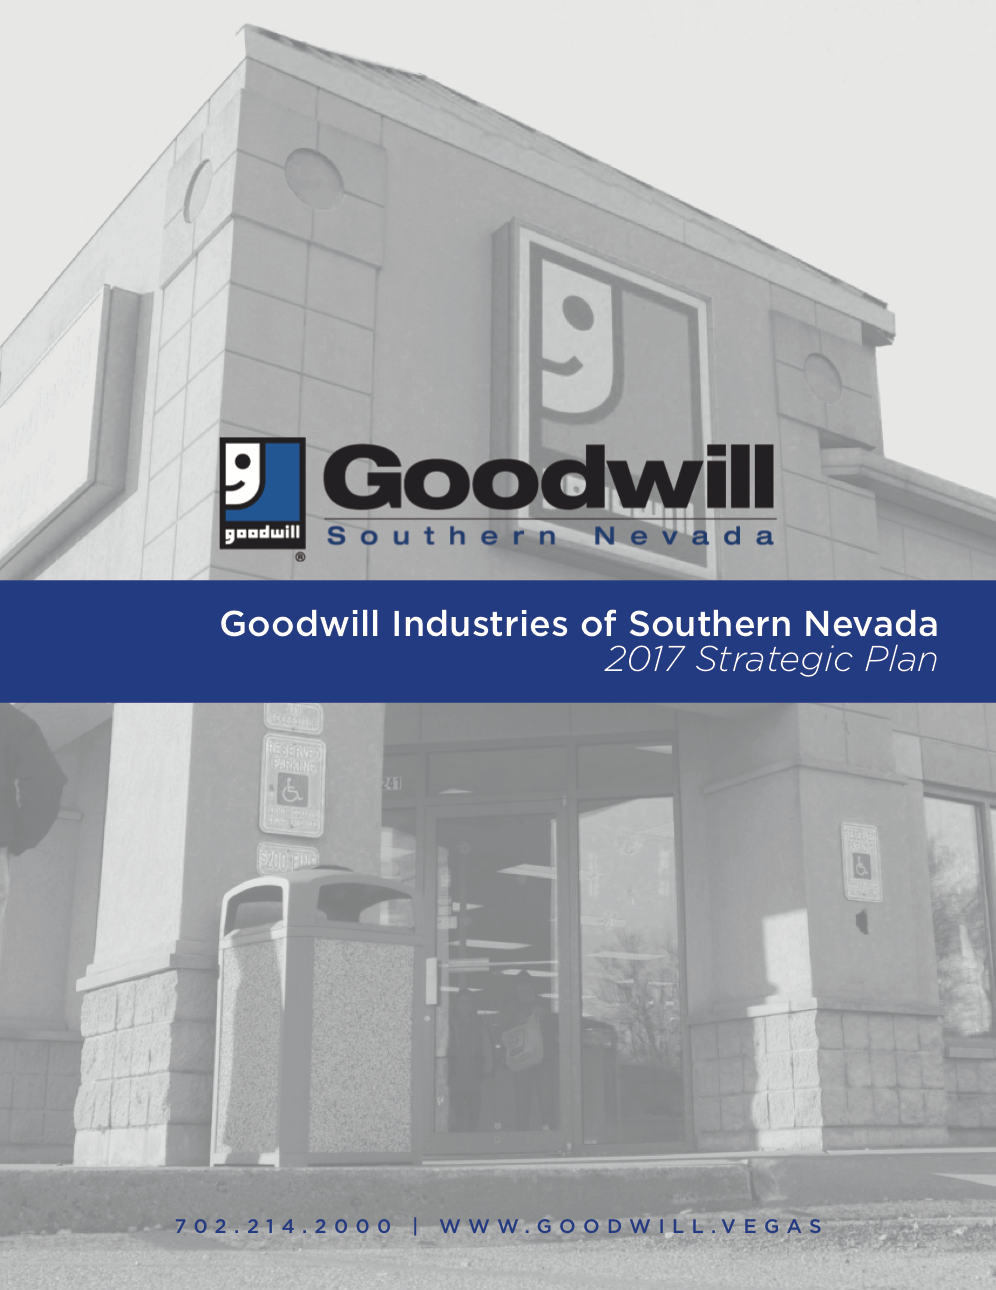 Goodwill Strategic Plan